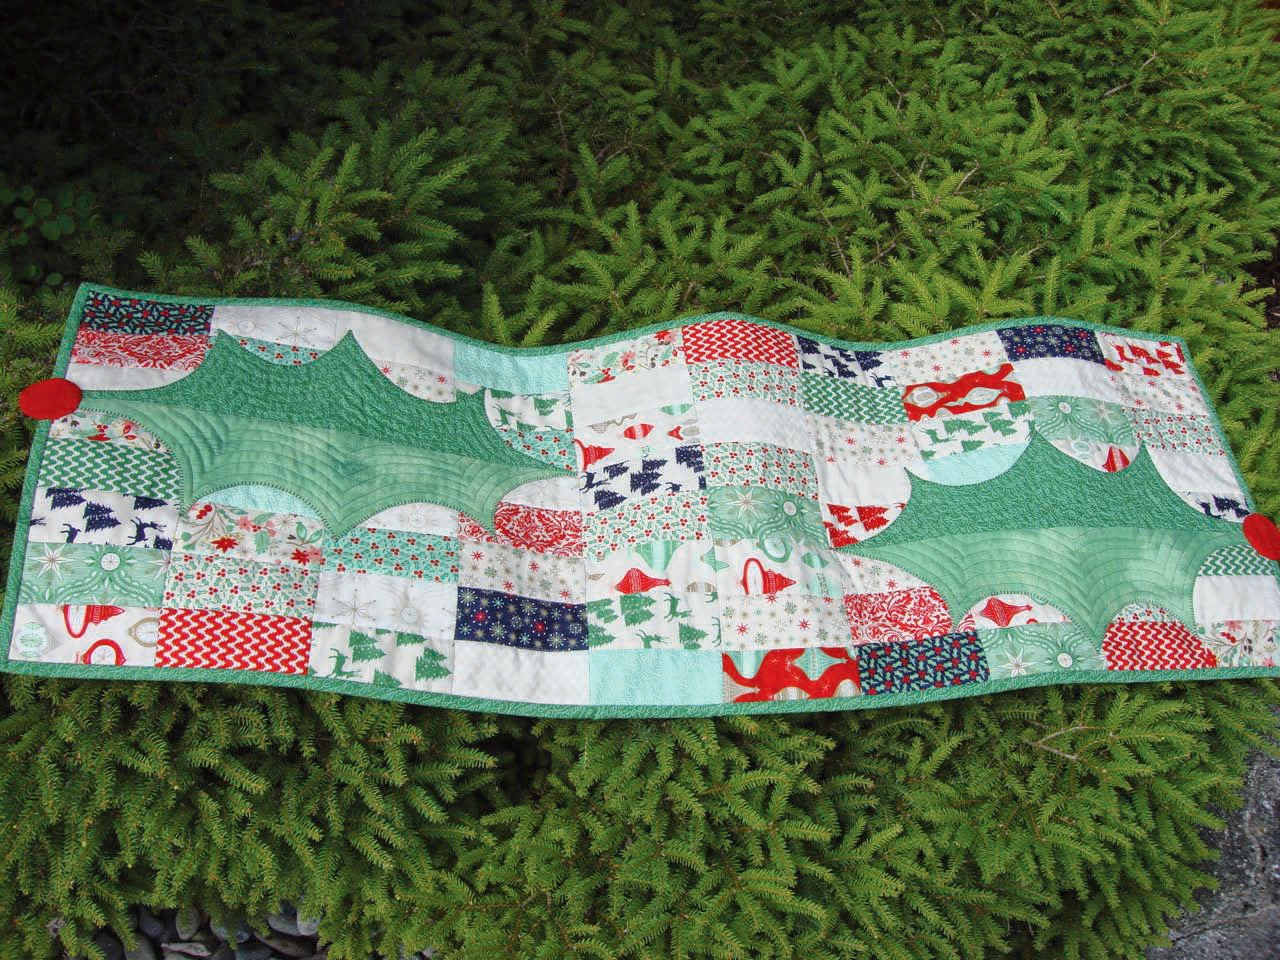 and One   greenery holiday runner runner patterns included table festive table tropical with some